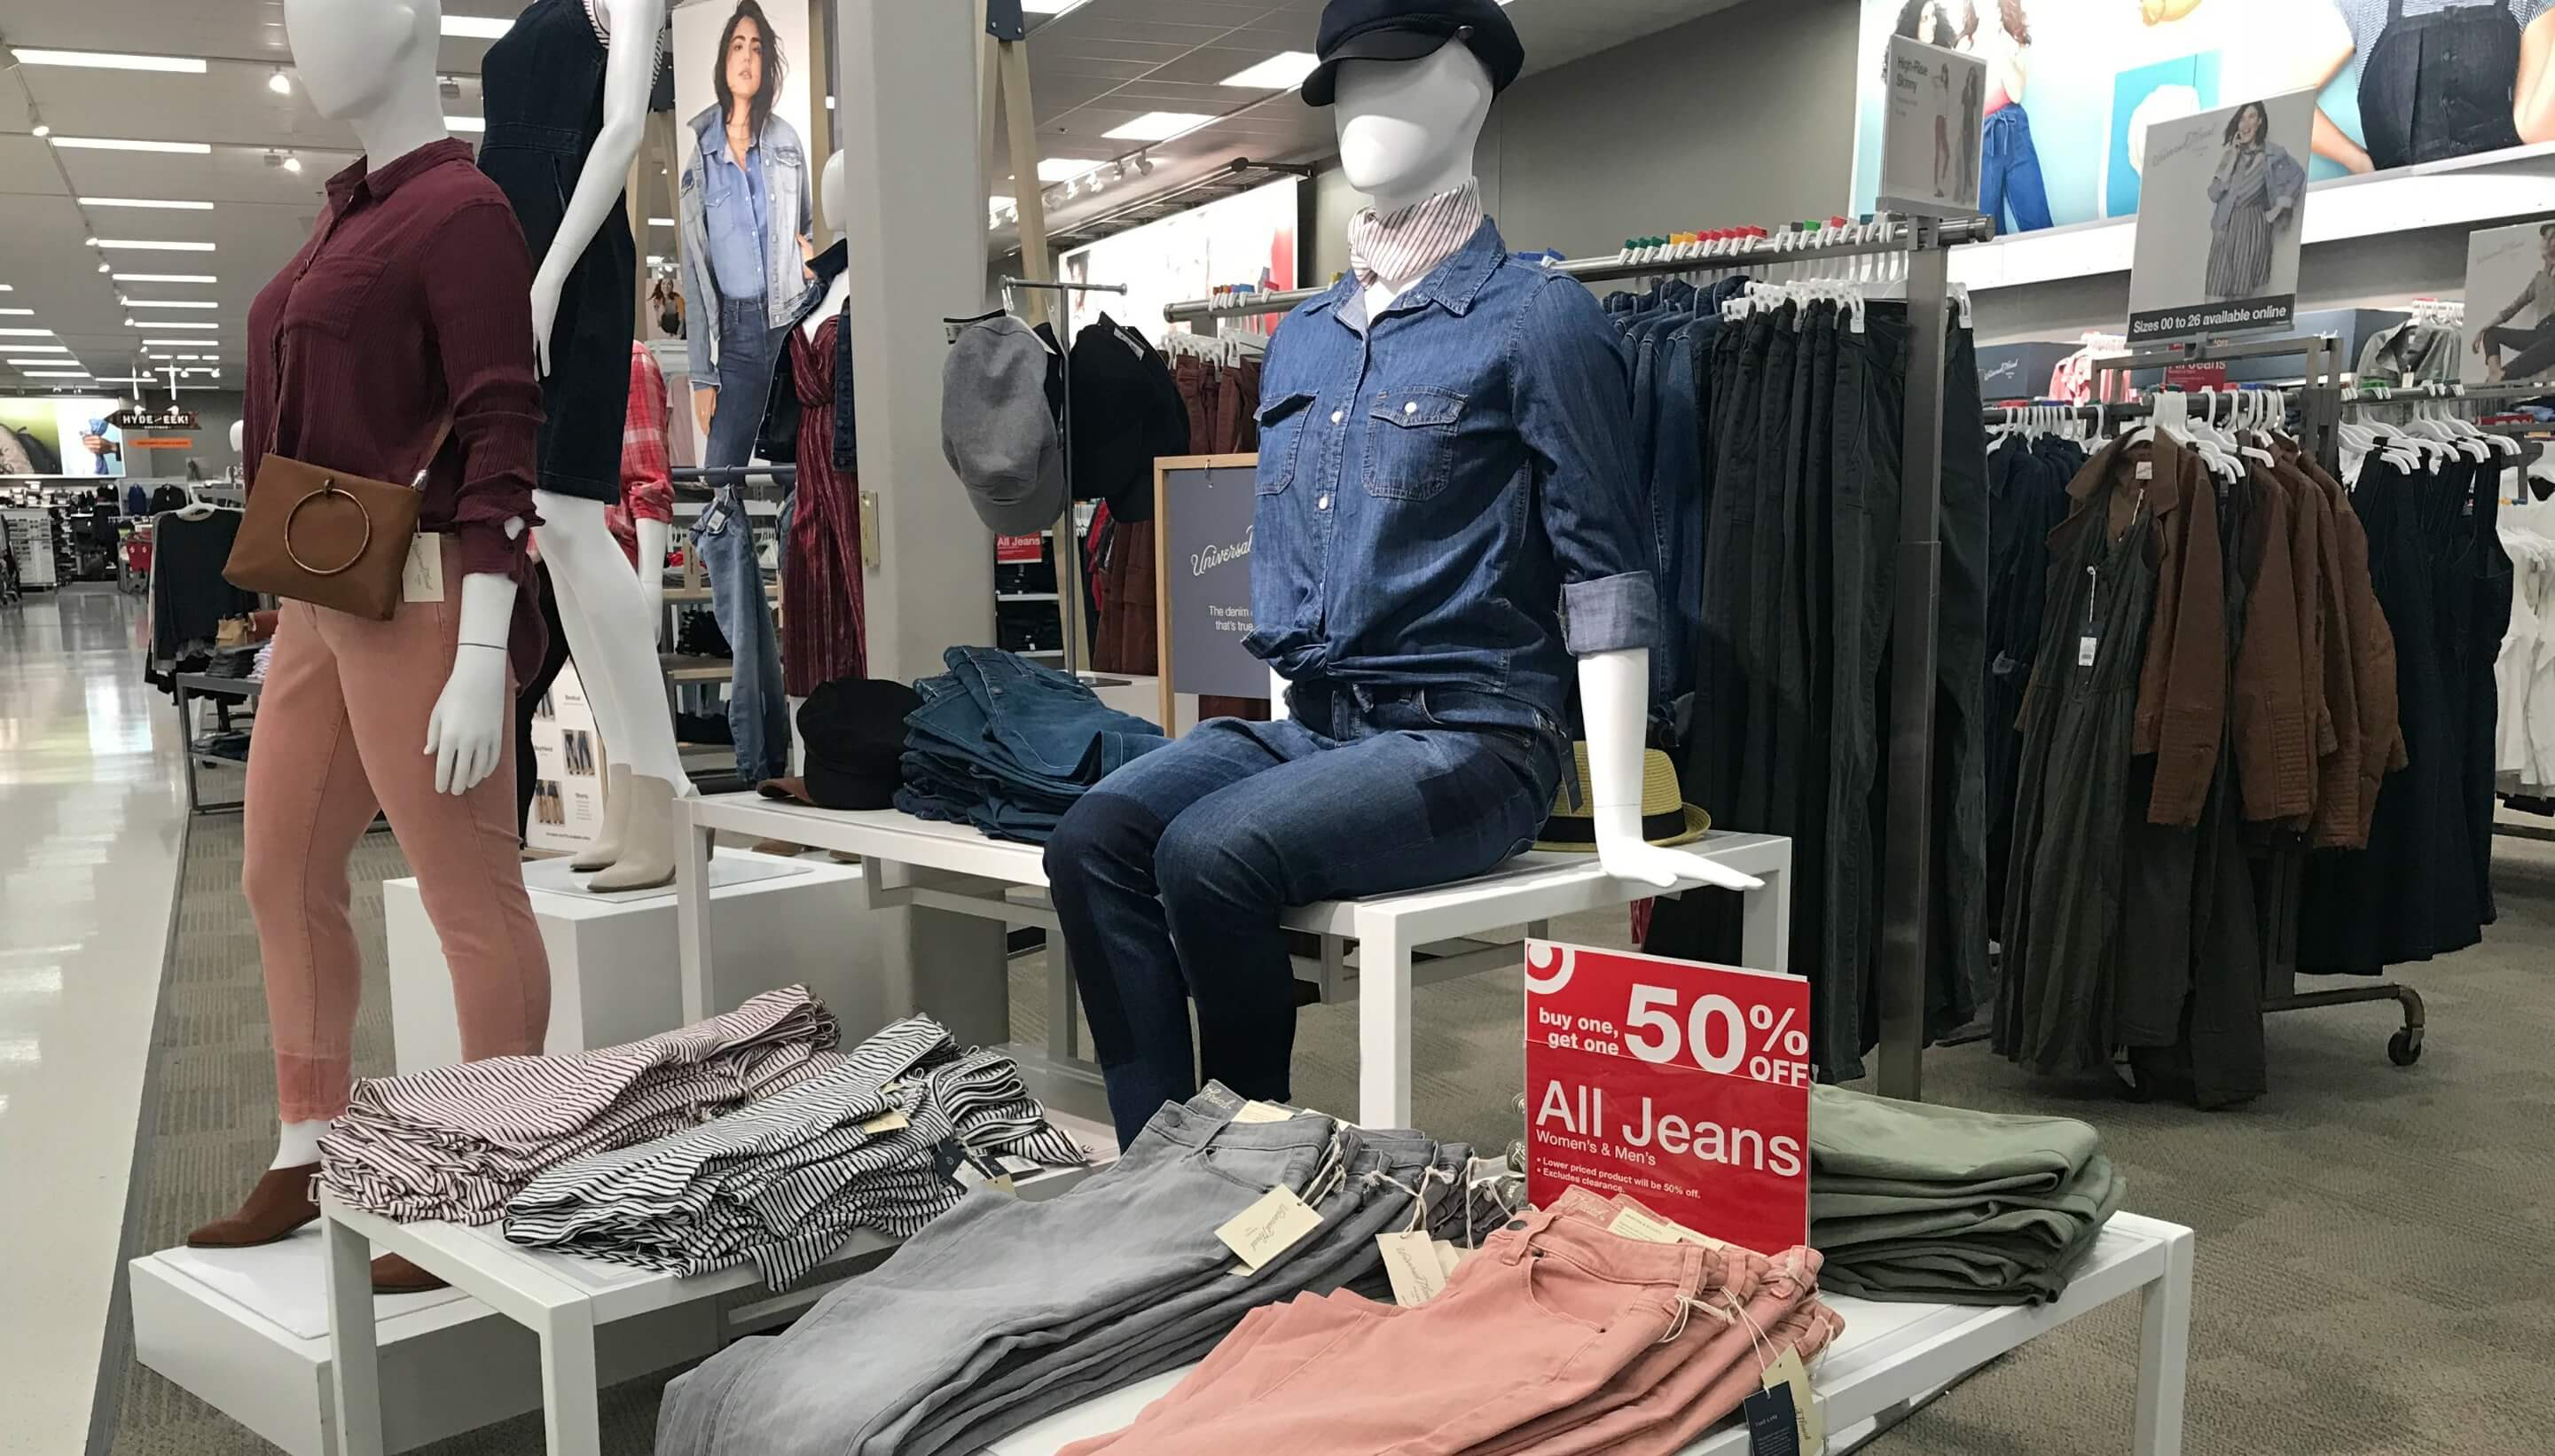 a95cbcc09ce 20% off Women s Apparel at Target - Jeans as low as  14.99